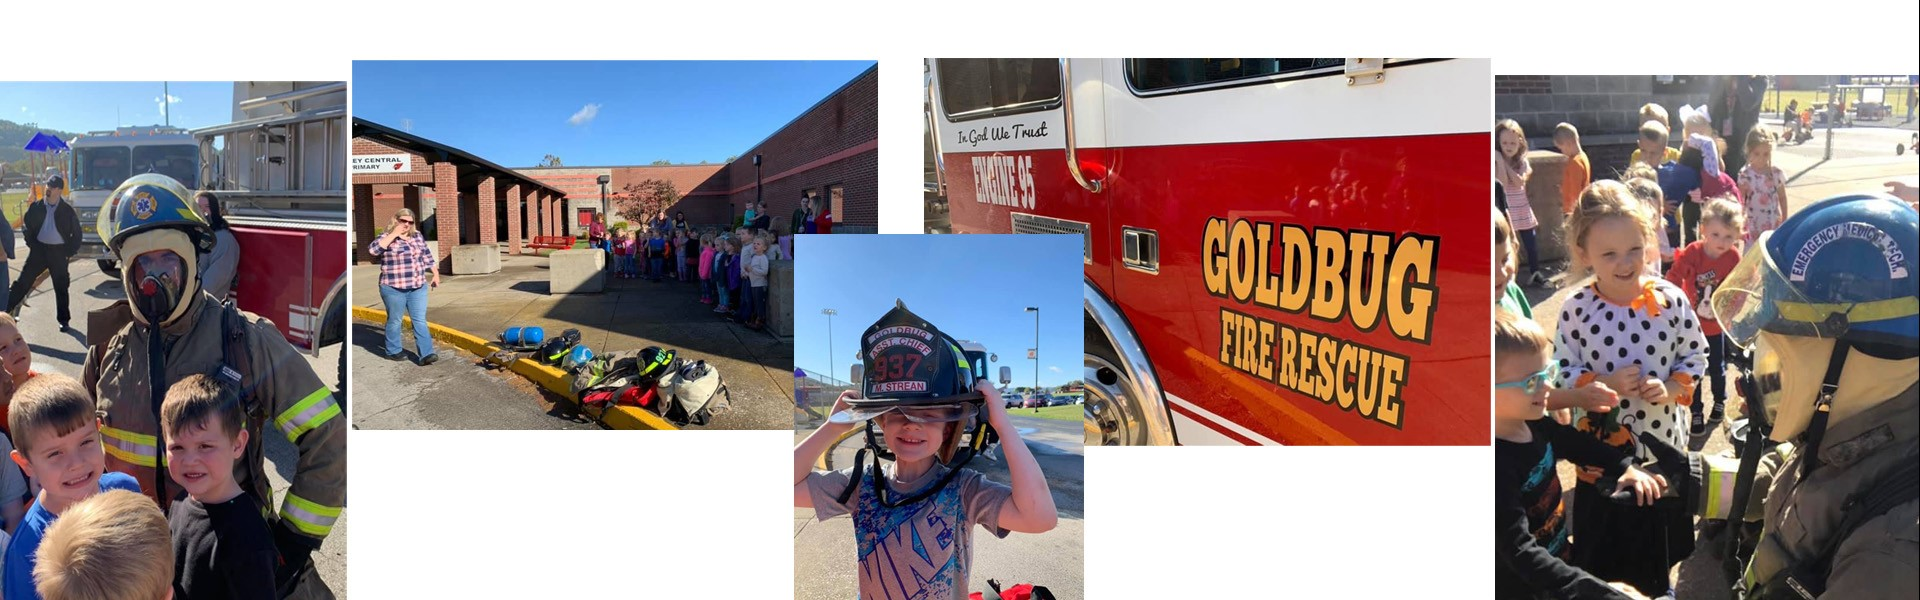 Thanks to Goldbug Fire Department for teaching students about fire safety!